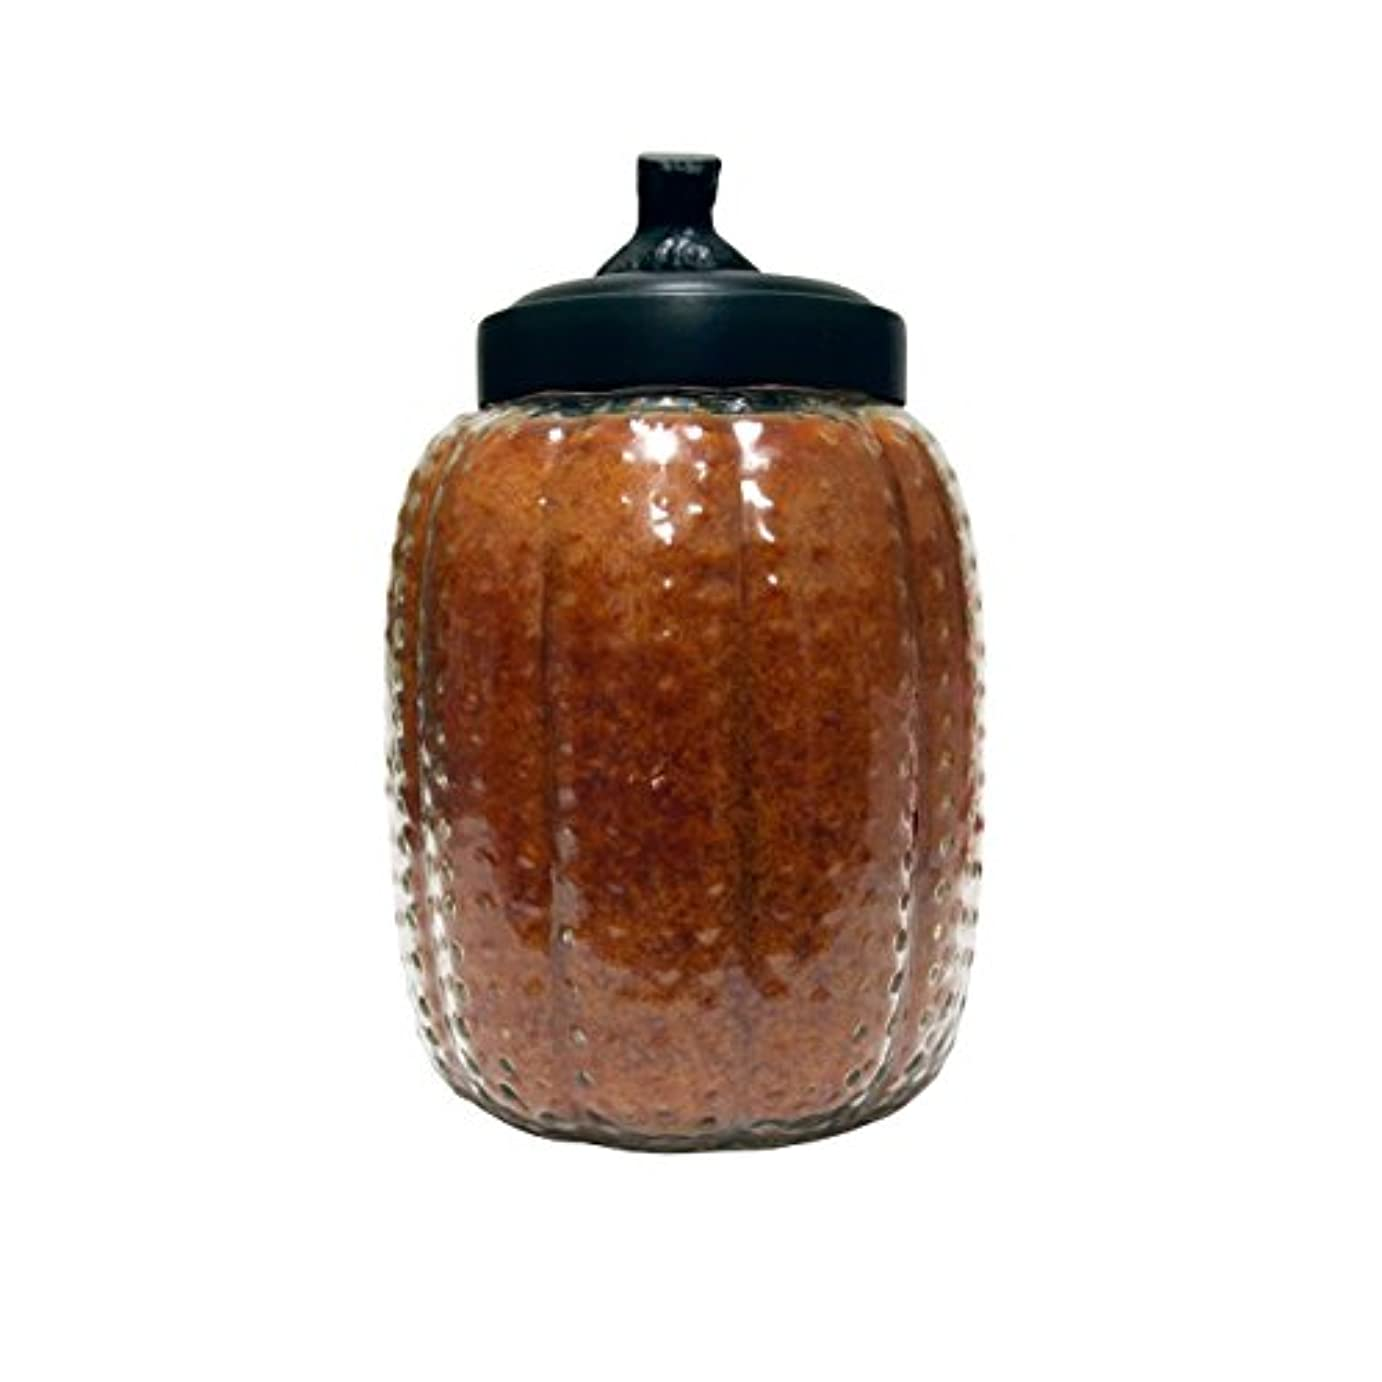 消毒剤パーツマラソンA Cheerful Giver Autumn Orchards Pumpkin Jar Candle, 26-Ounce by Cheerful Giver [並行輸入品]